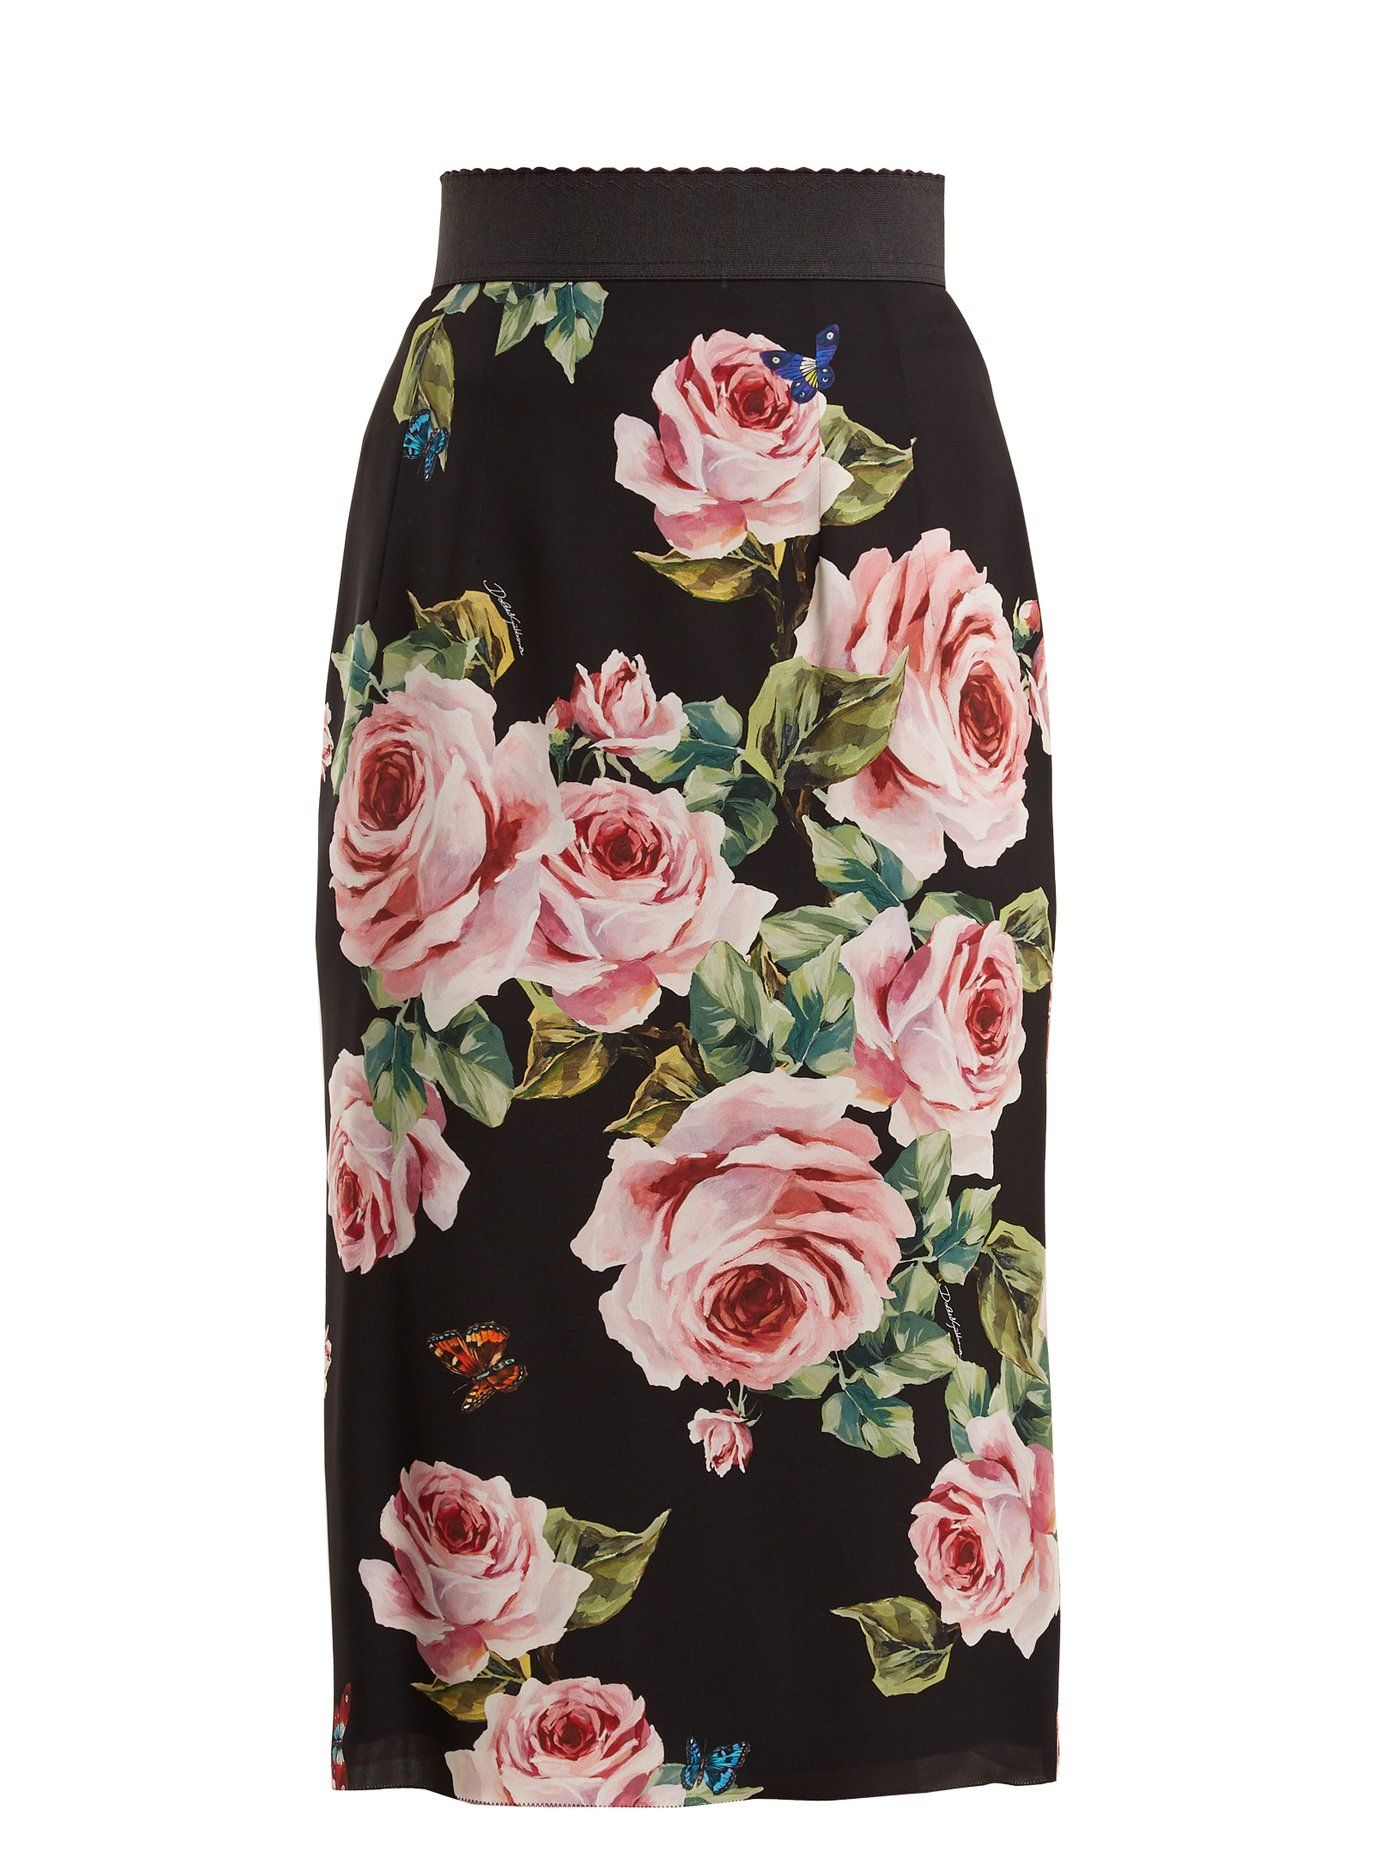 7d5c4afc5a Click here to buy Dolce & Gabbana Rose-print stretch-silk skirt at  MATCHESFASHION.COM